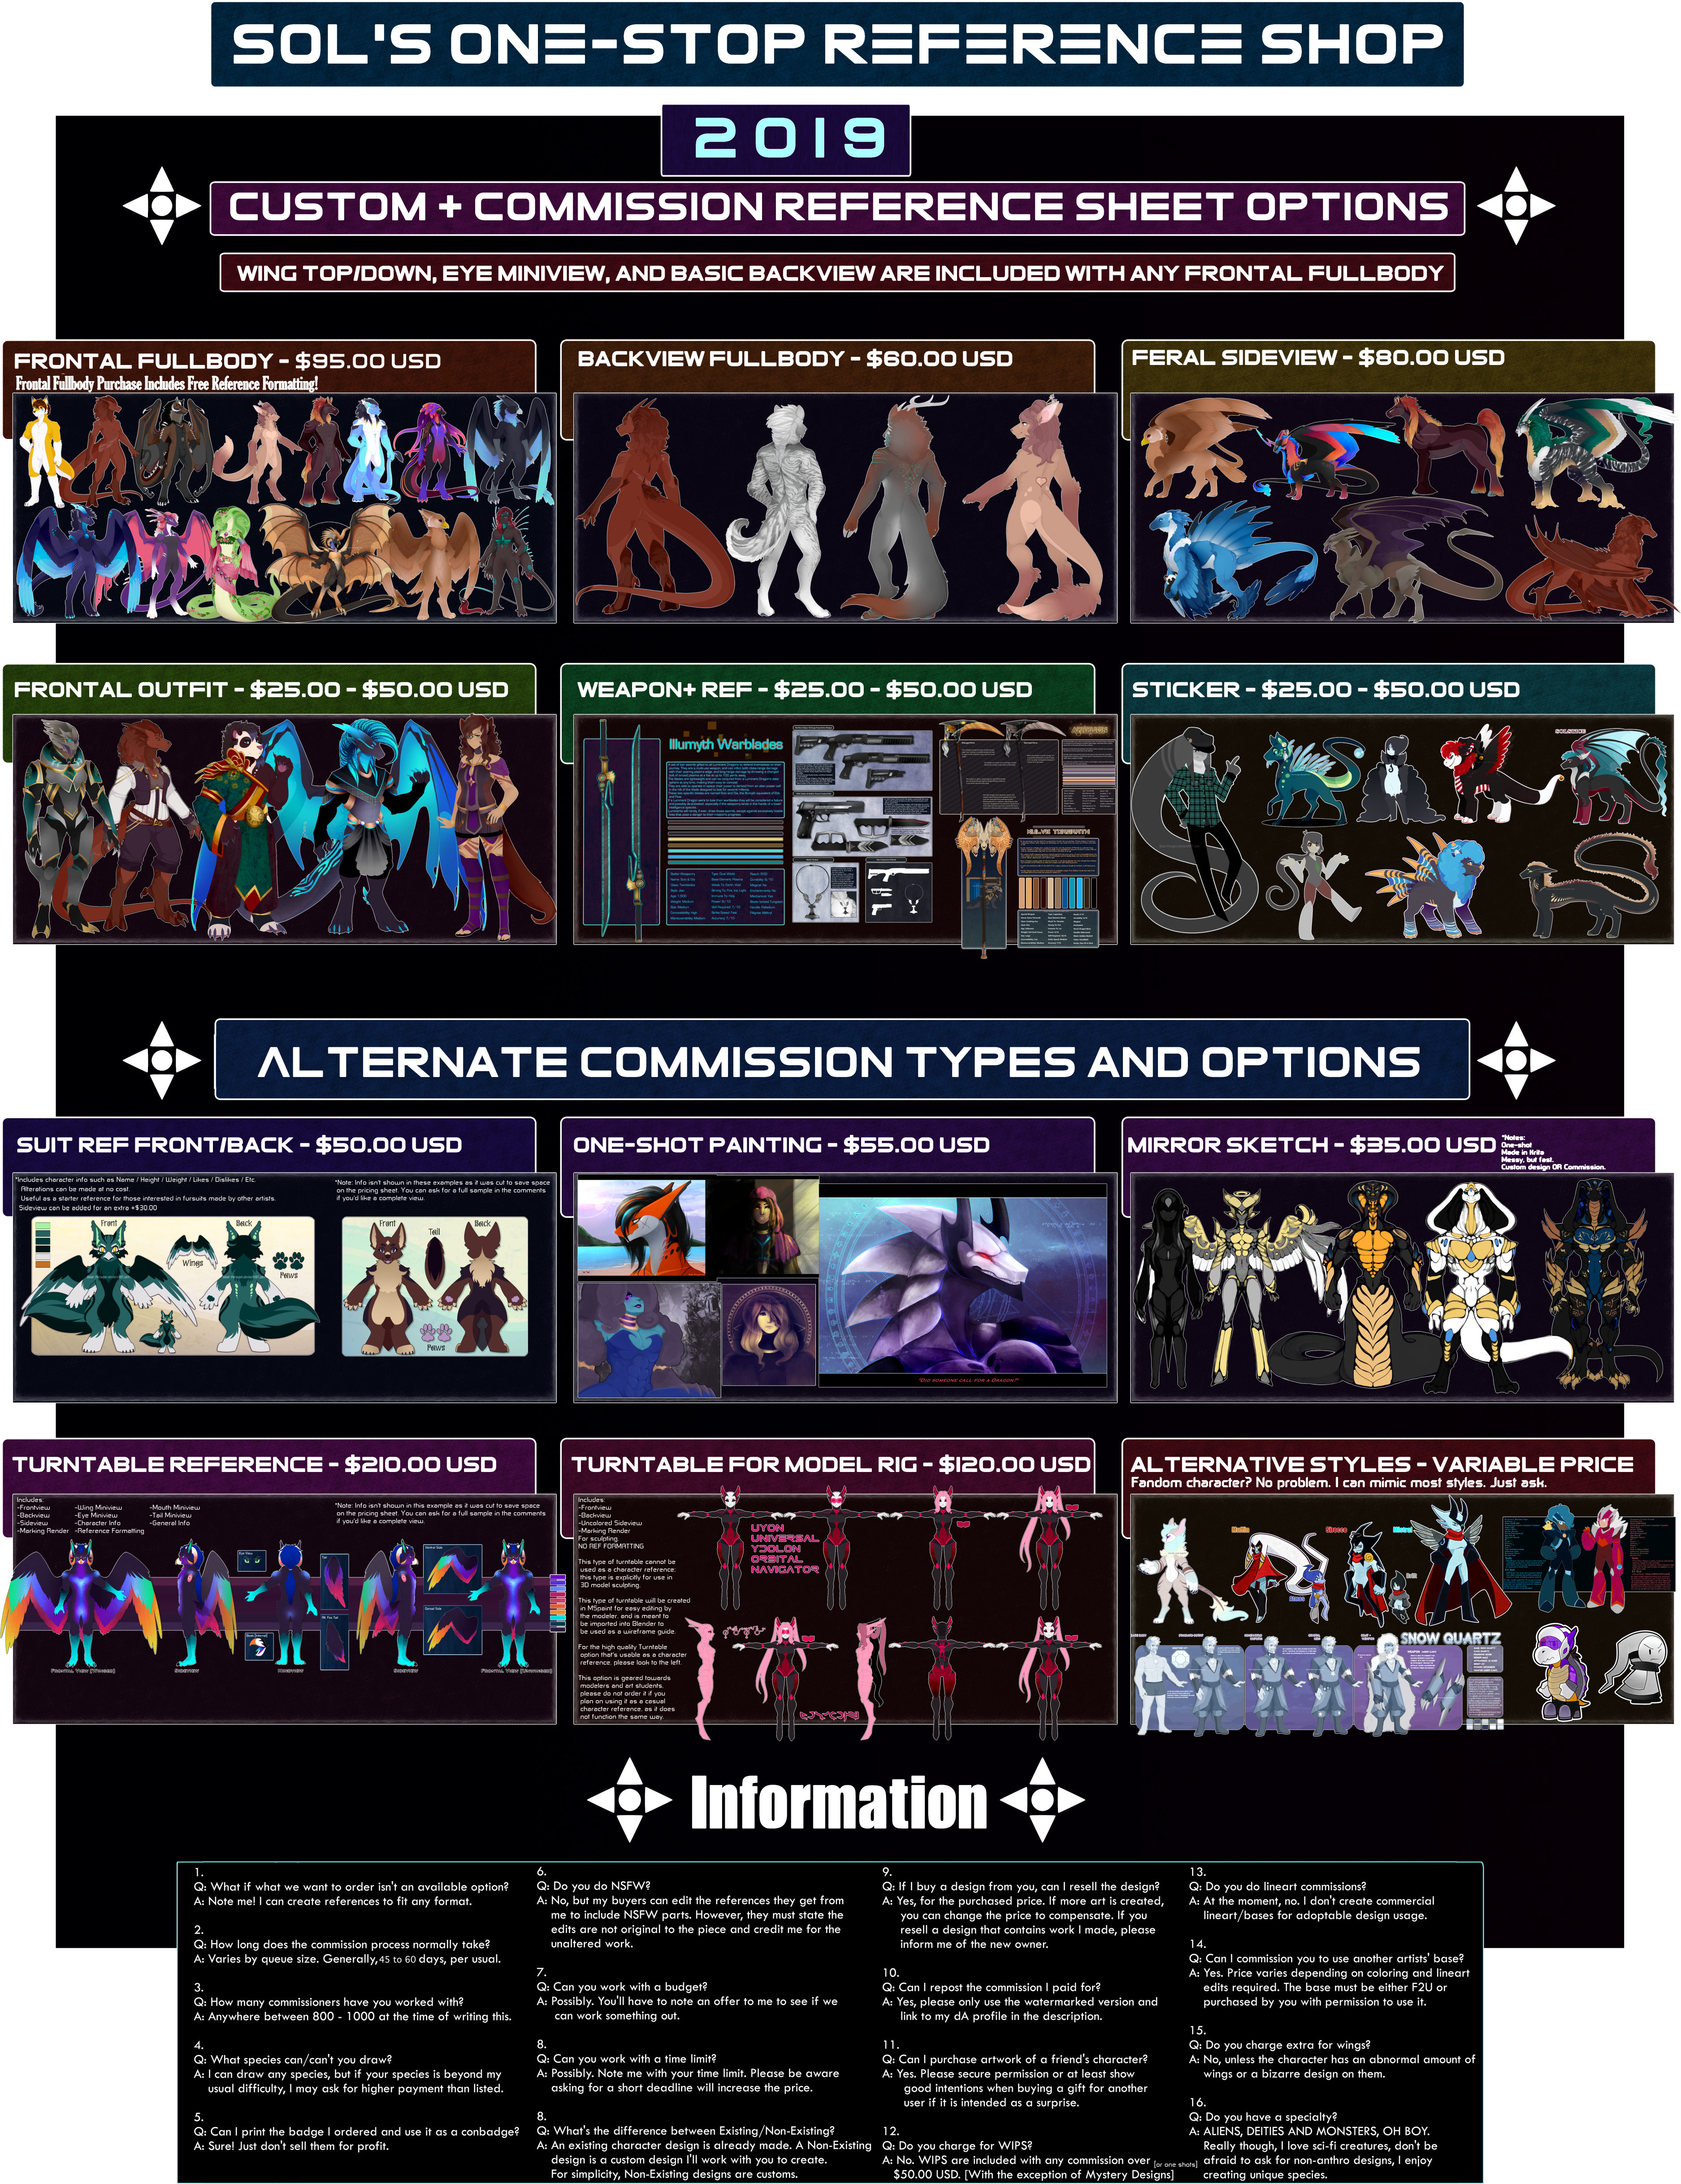 Custom + Commission Prices 2019 by Solar-Paragon